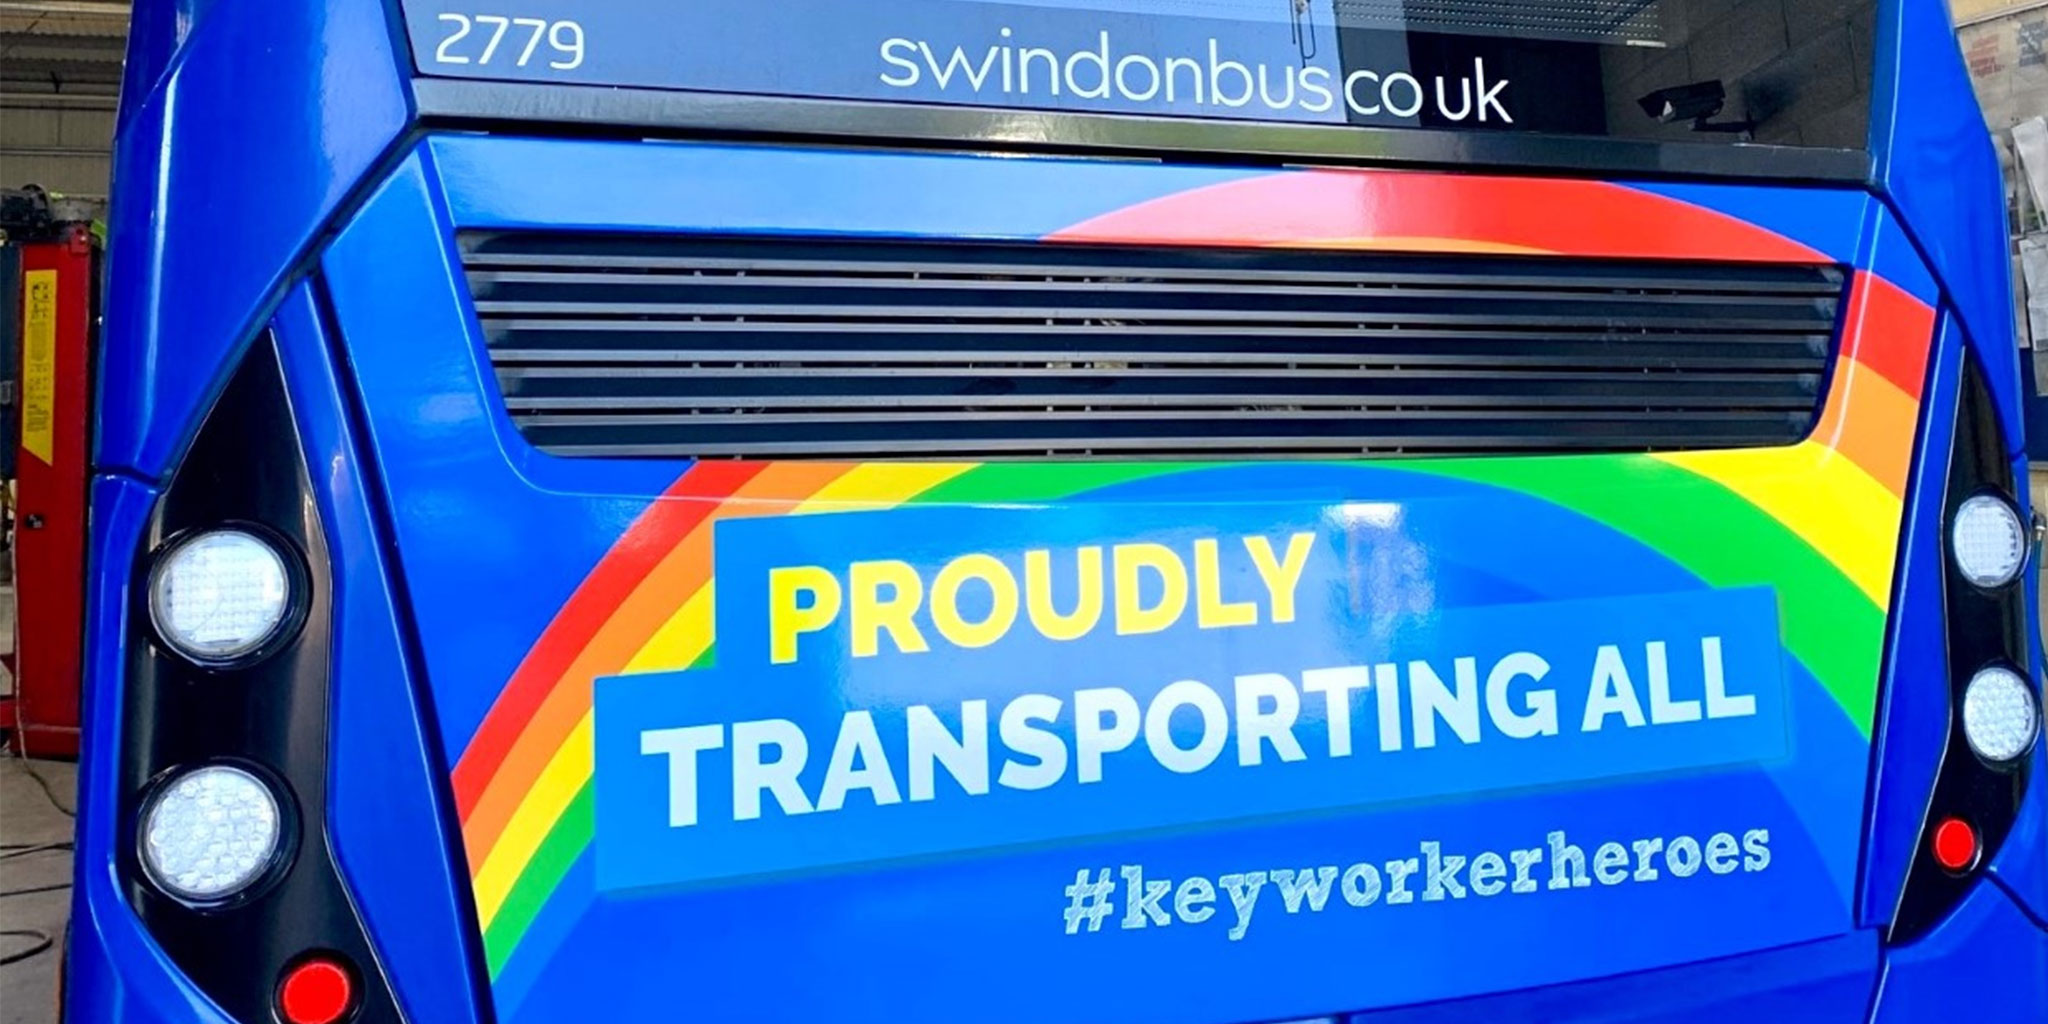 A photo of a Swindon's bus with a rear design reading 'proudly transporting all #keyworkerheroes'